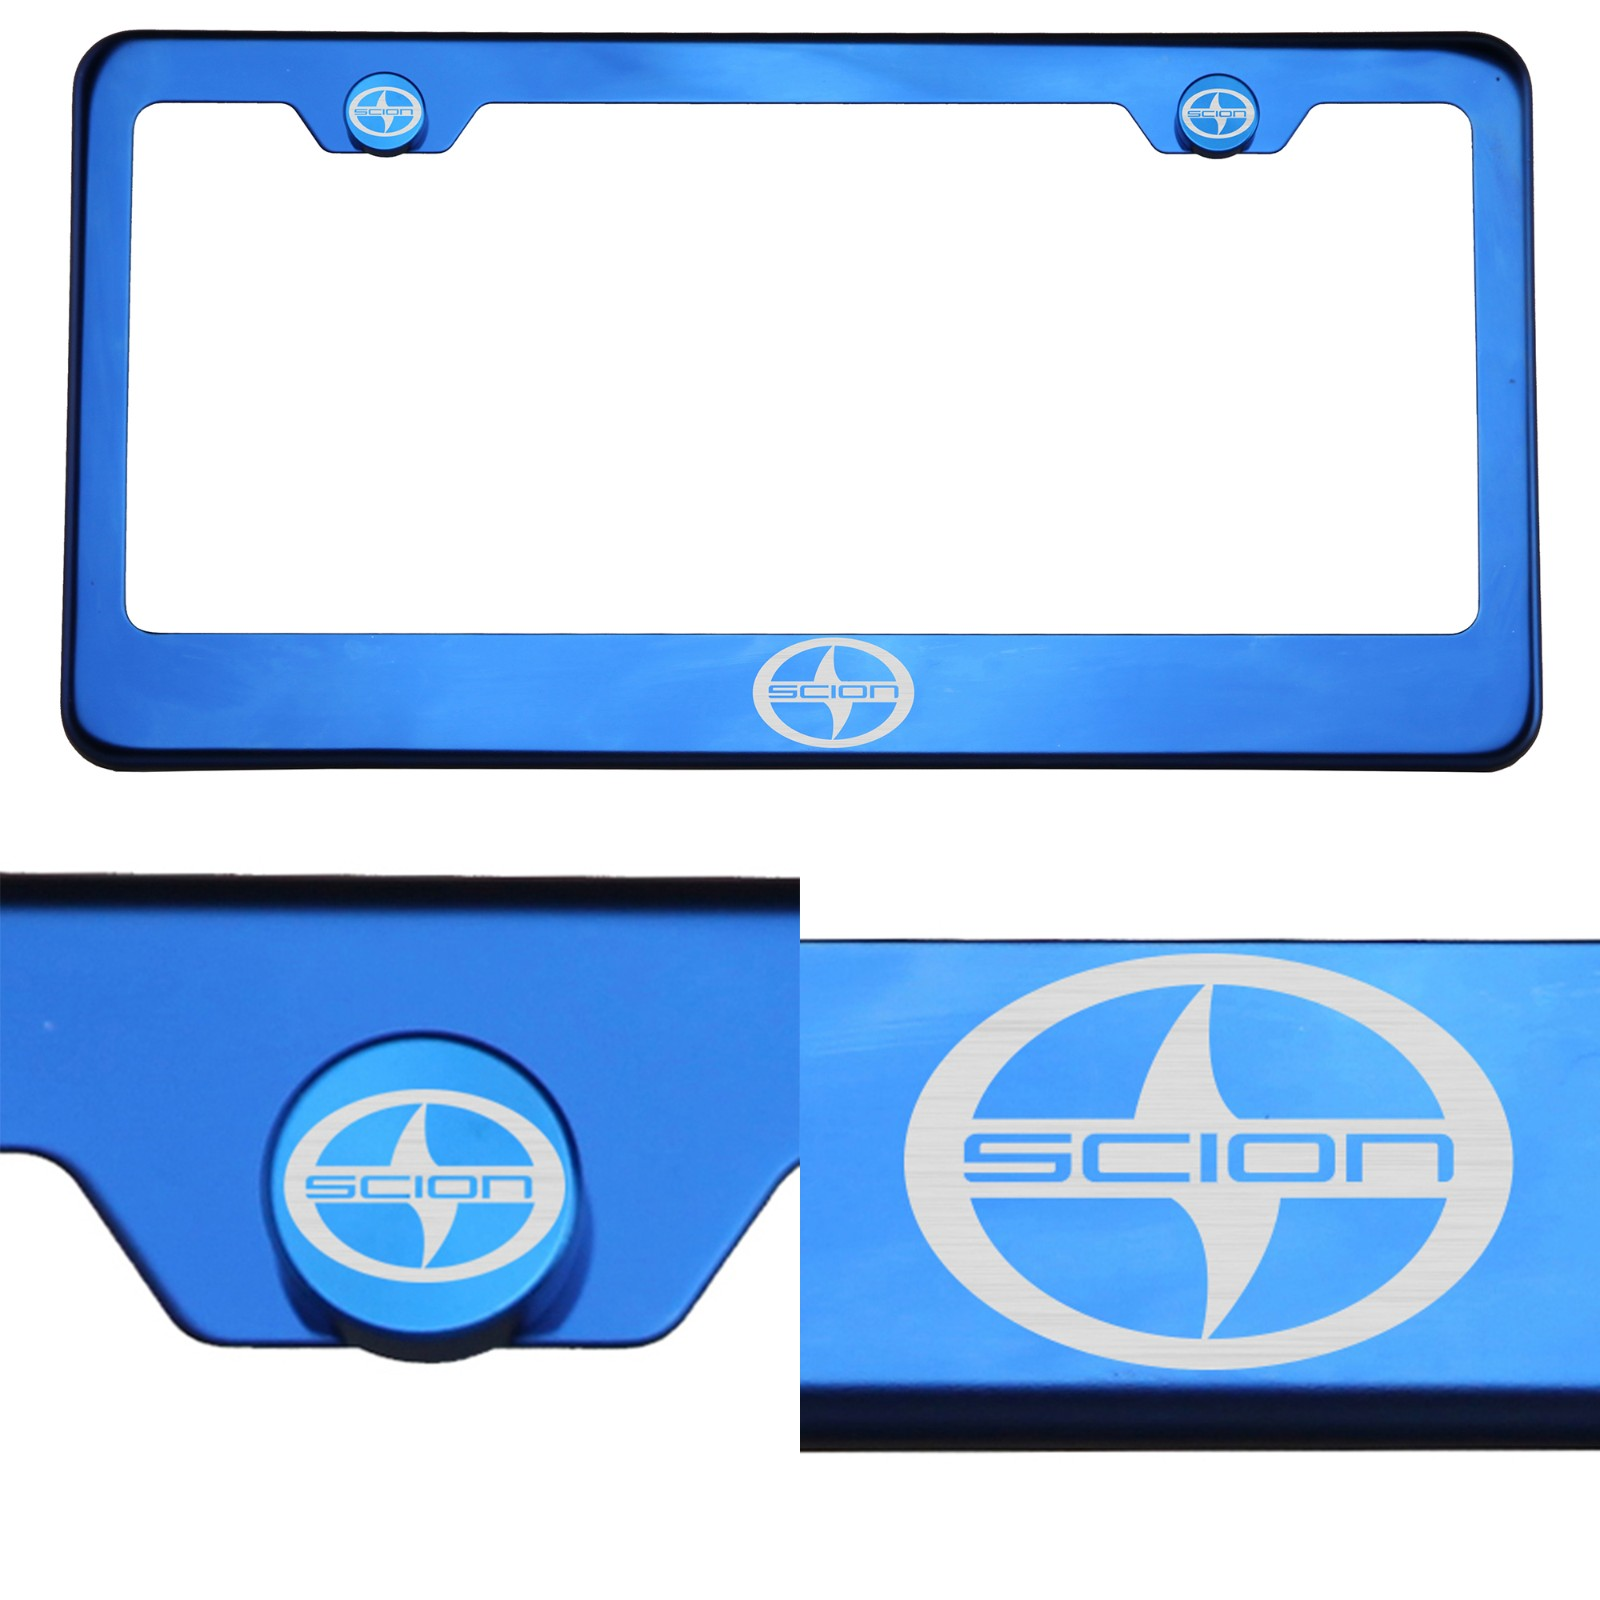 for scion chrome license plate frame stainless steel miorro finish laser engrave